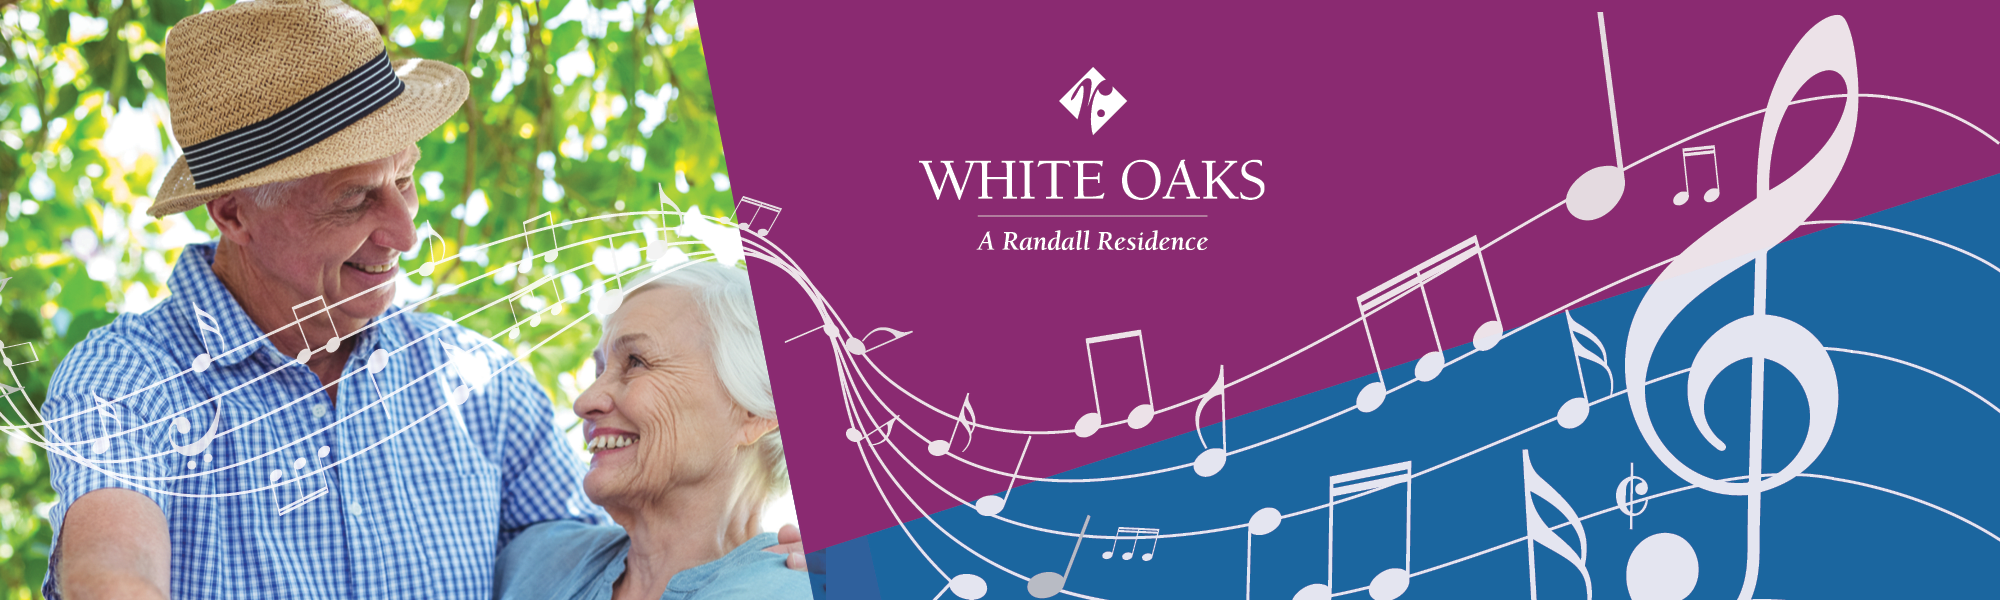 Events at White Oaks in Lawton, Michigan